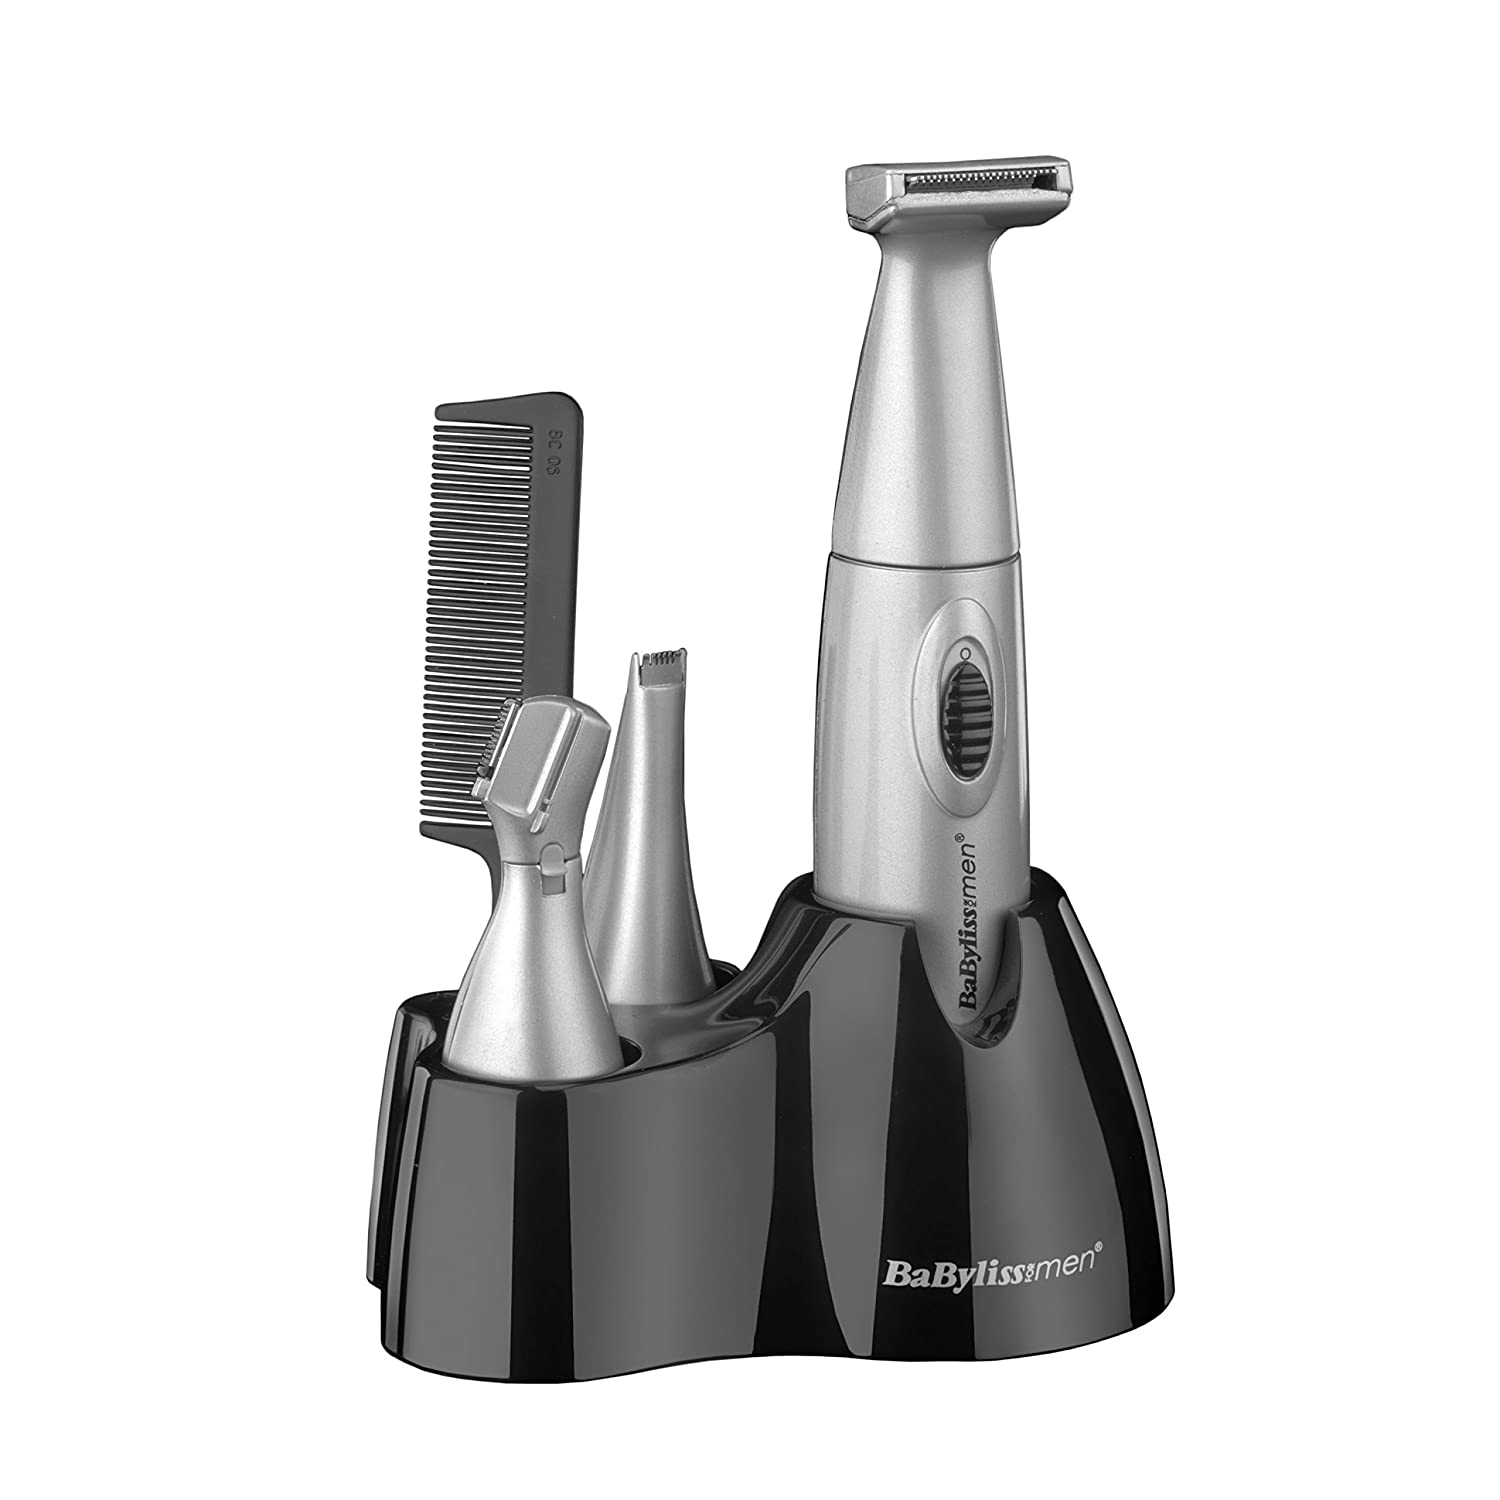 BaByliss for Men 7040CU 6-in-1 Grooming Kit The Conair Group Ltd